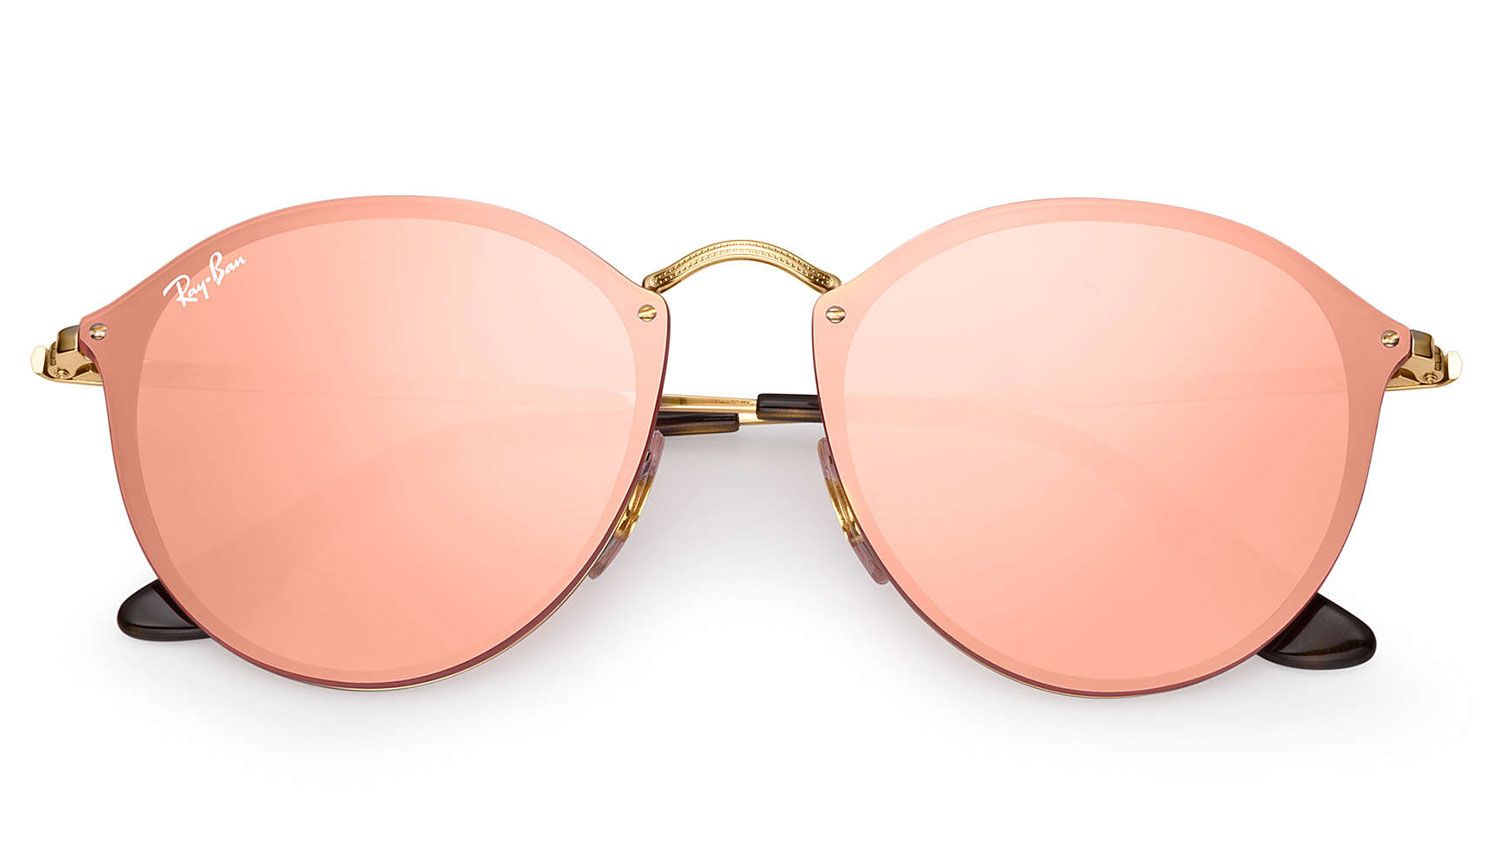 862a5356eb Ray-Ban Blaze Round Pink Mirror Womens Sunglasses - RB3574N 001 E4 59